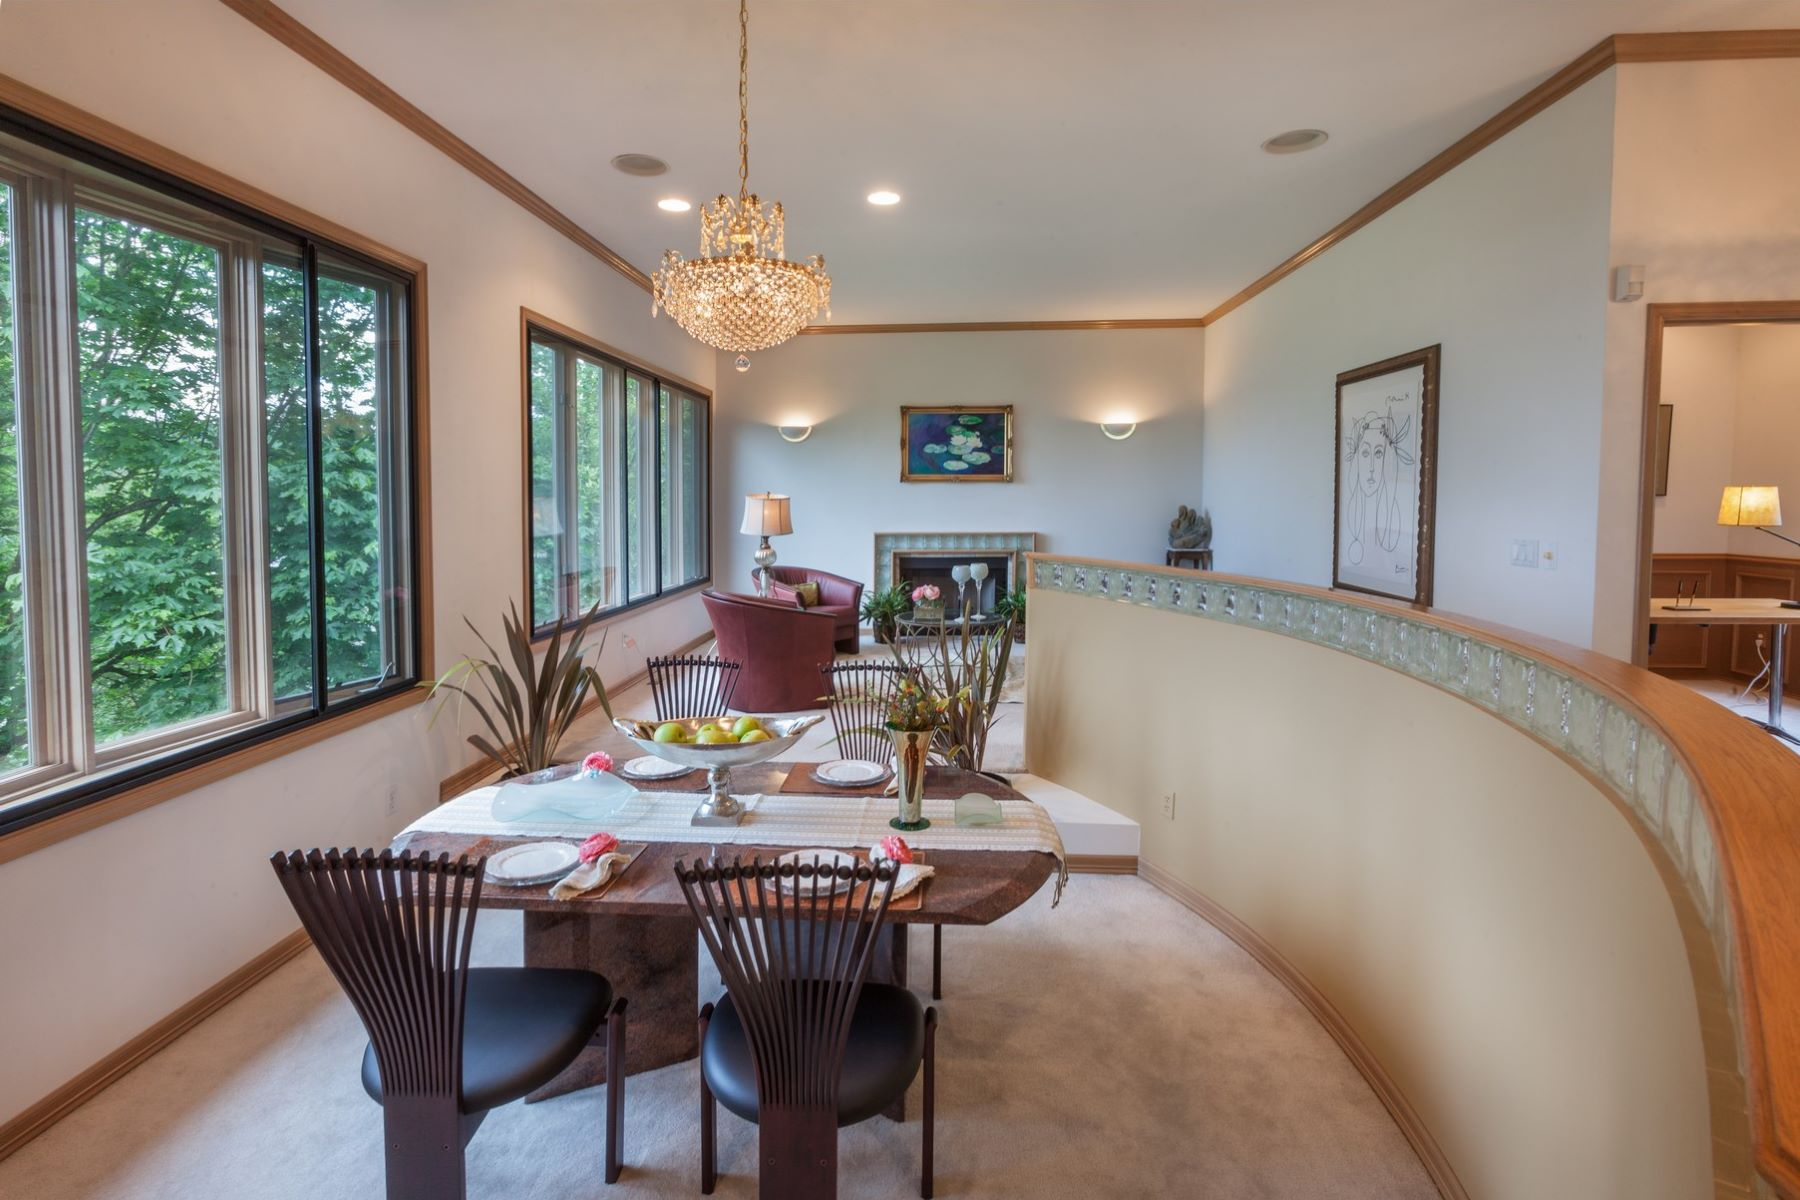 Additional photo for property listing at Clyde Hill Contemporary 9836 NE 34th Pl Bellevue, Washington 98004 États-Unis